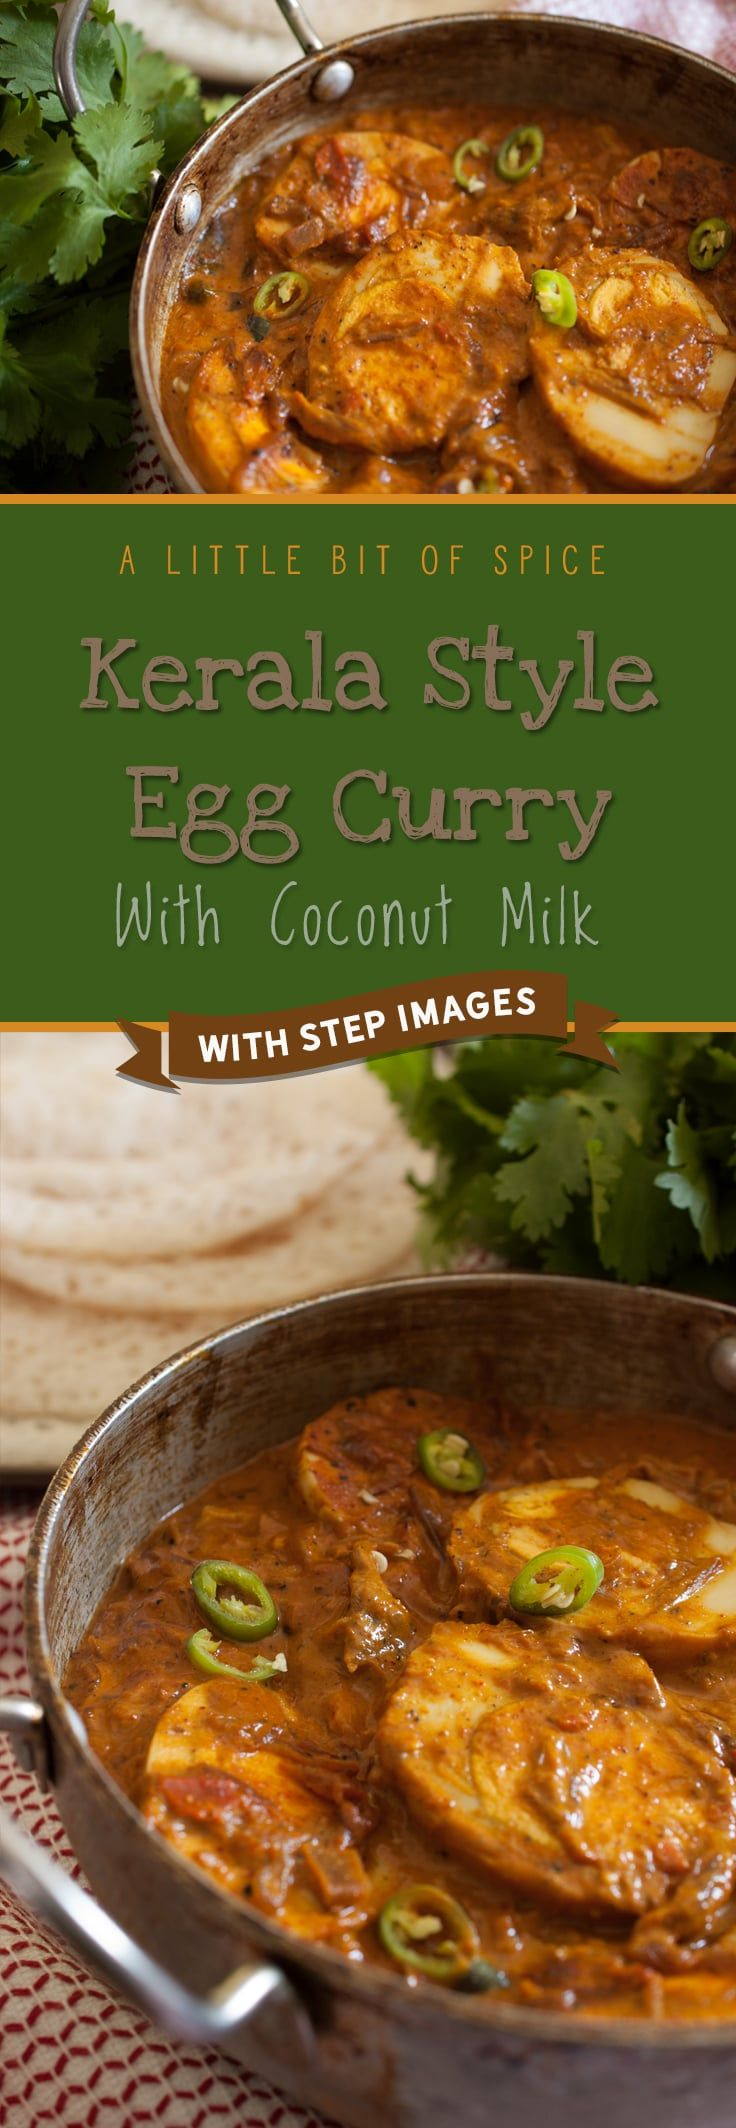 Boiled eggs simmered in coconut milk with onion, ginger- garlic and spices. One of the easy and tasty side dish that you can prepare very quickly. Mostly served for breakfast with Appam(Rice and Coconut pancake) or Noolappam (String Hoppers) or Puttu (Rice Steamed Cake) or Roti. #egg #curry #coconutmilk #maindishrecipe #kerala